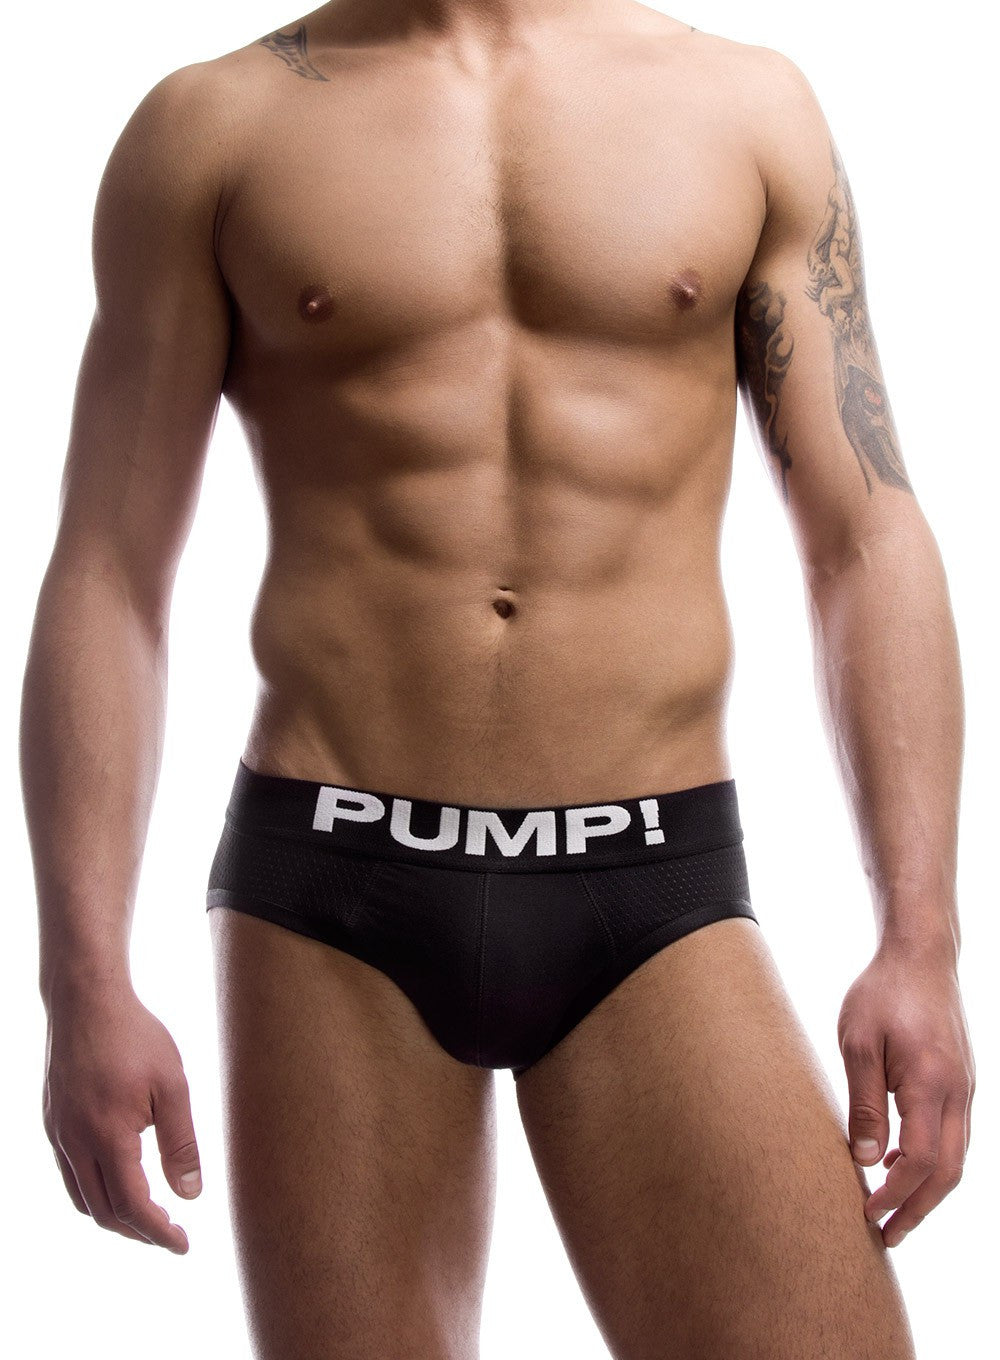 PUMP Touchdown Classic mesh brief black